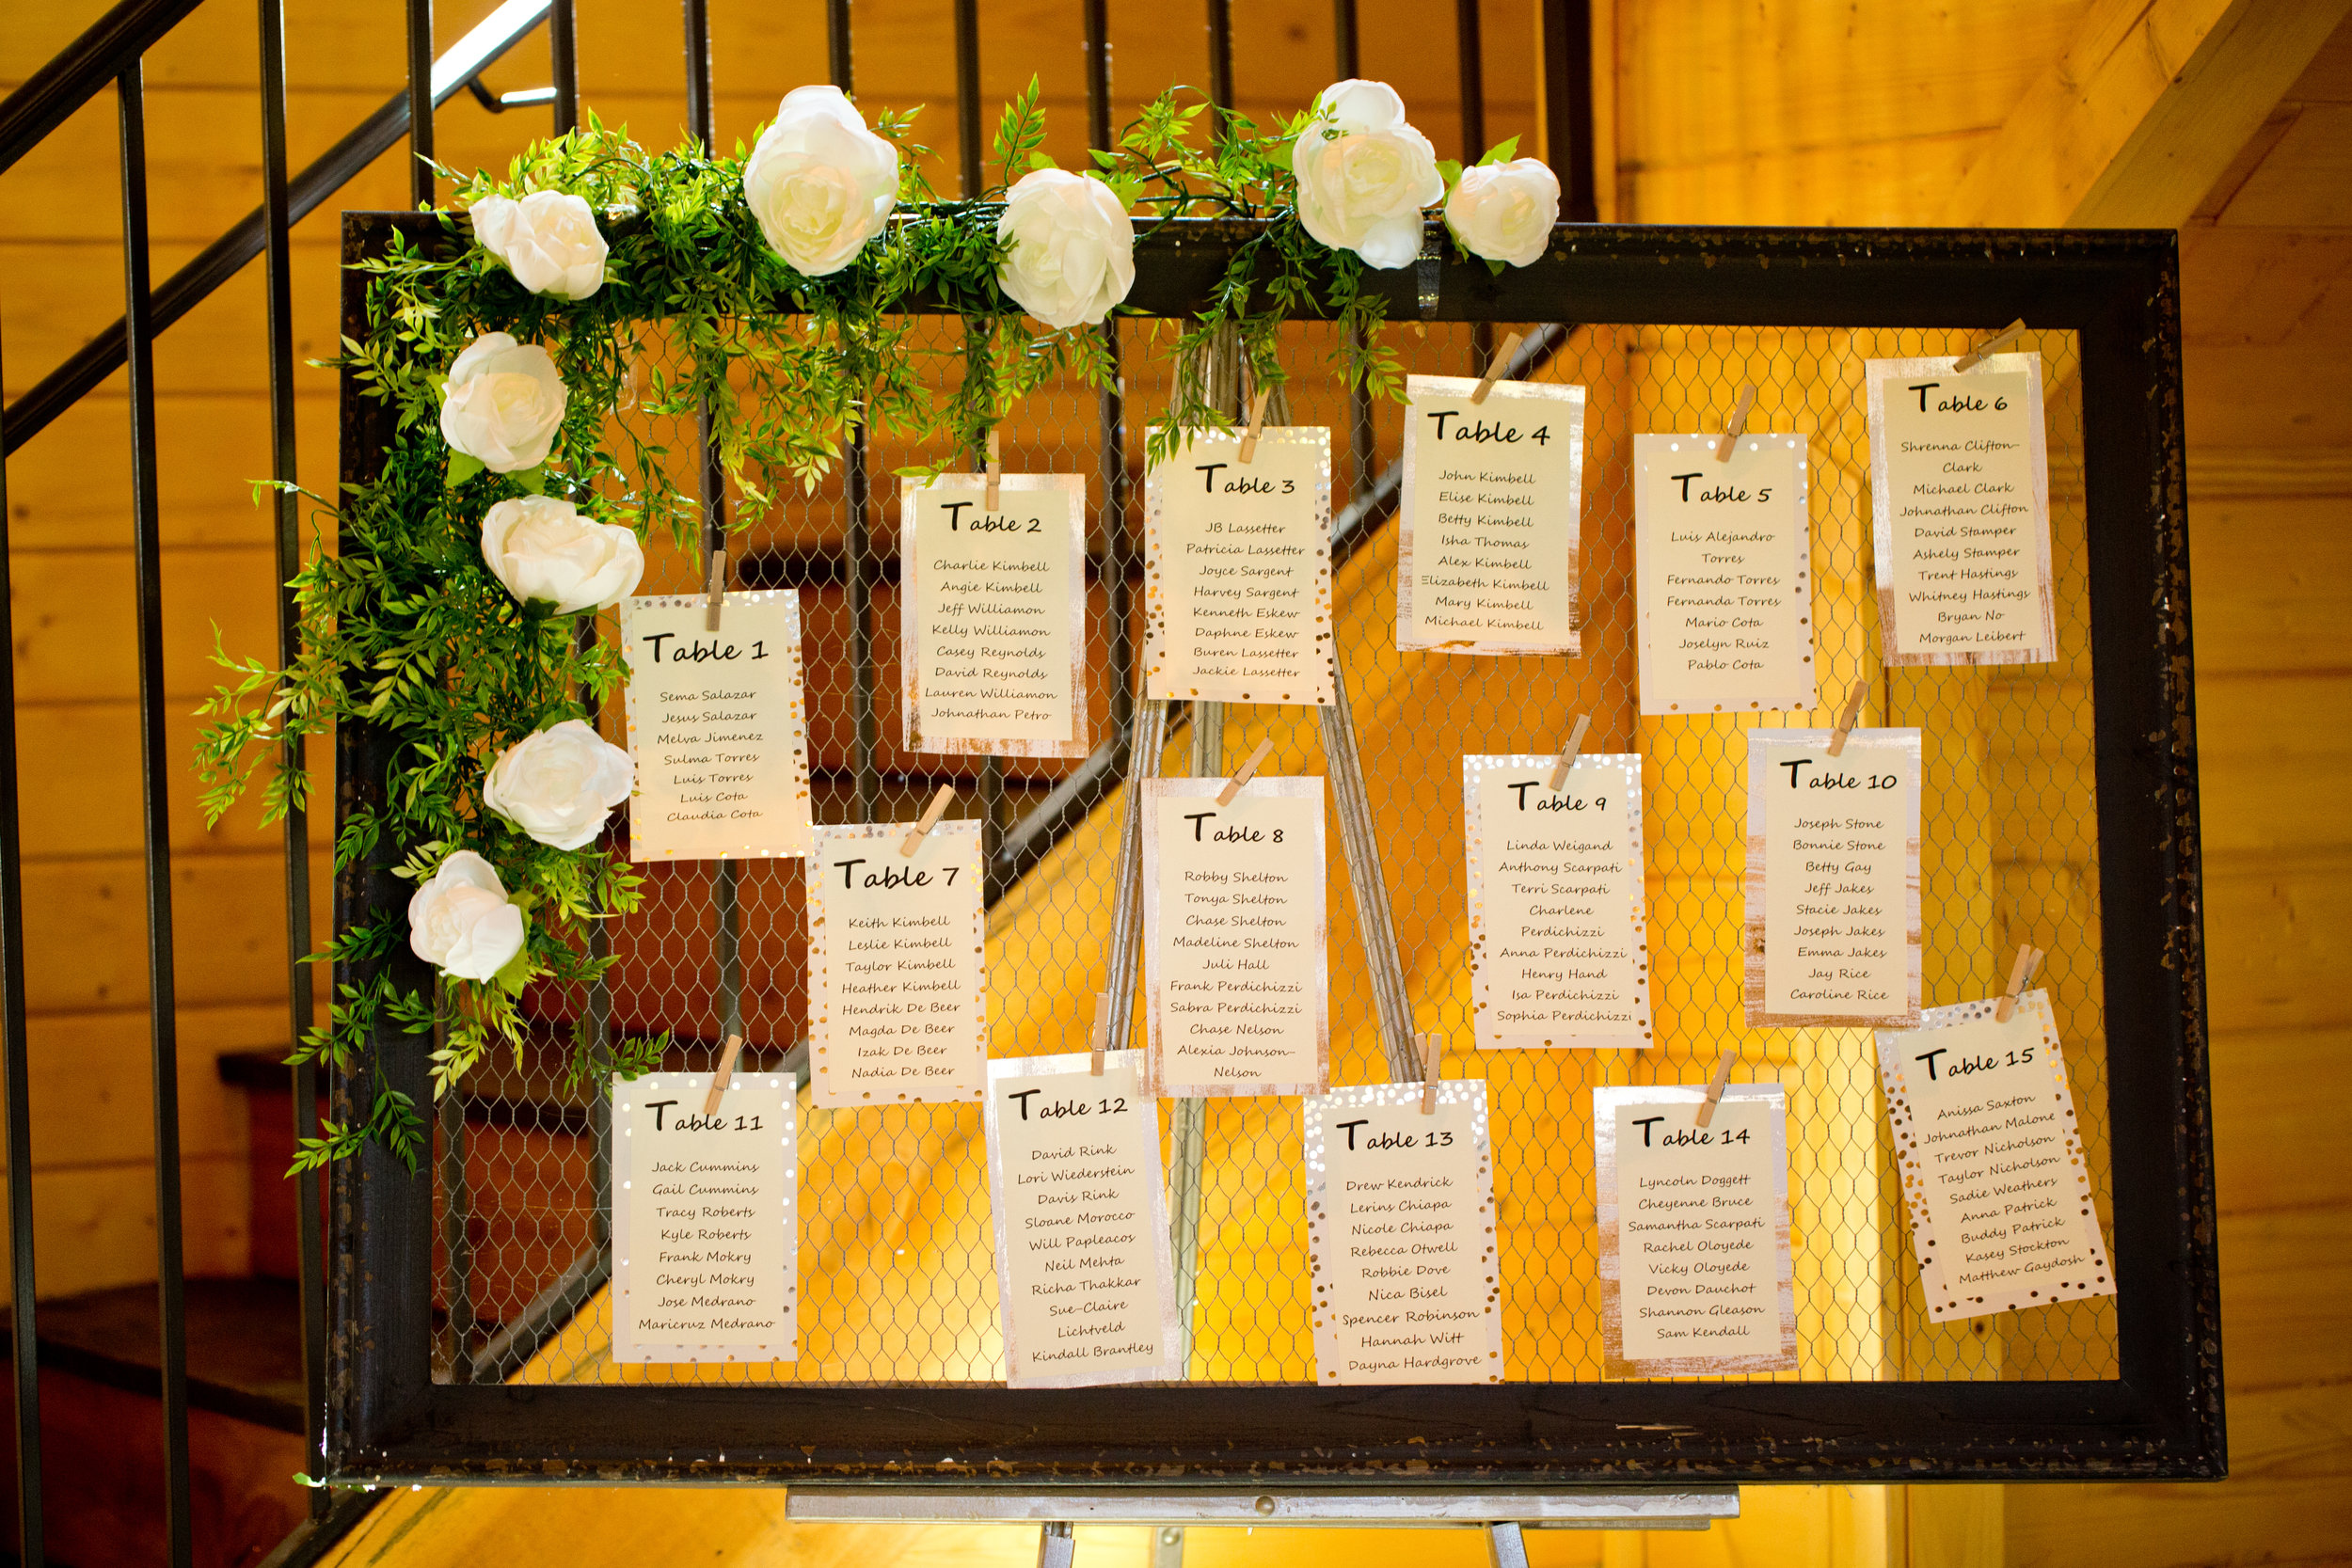 This framed wire board is perfect for displaying a seating chart. pc: Taken by Tate